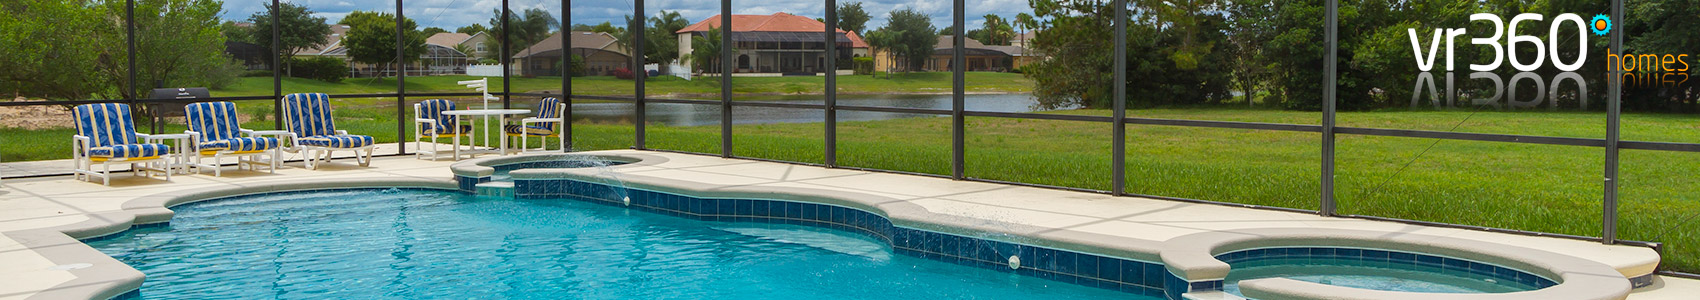 Formosa Gardens Vacation Rentals and Villas in Orlando, Florida